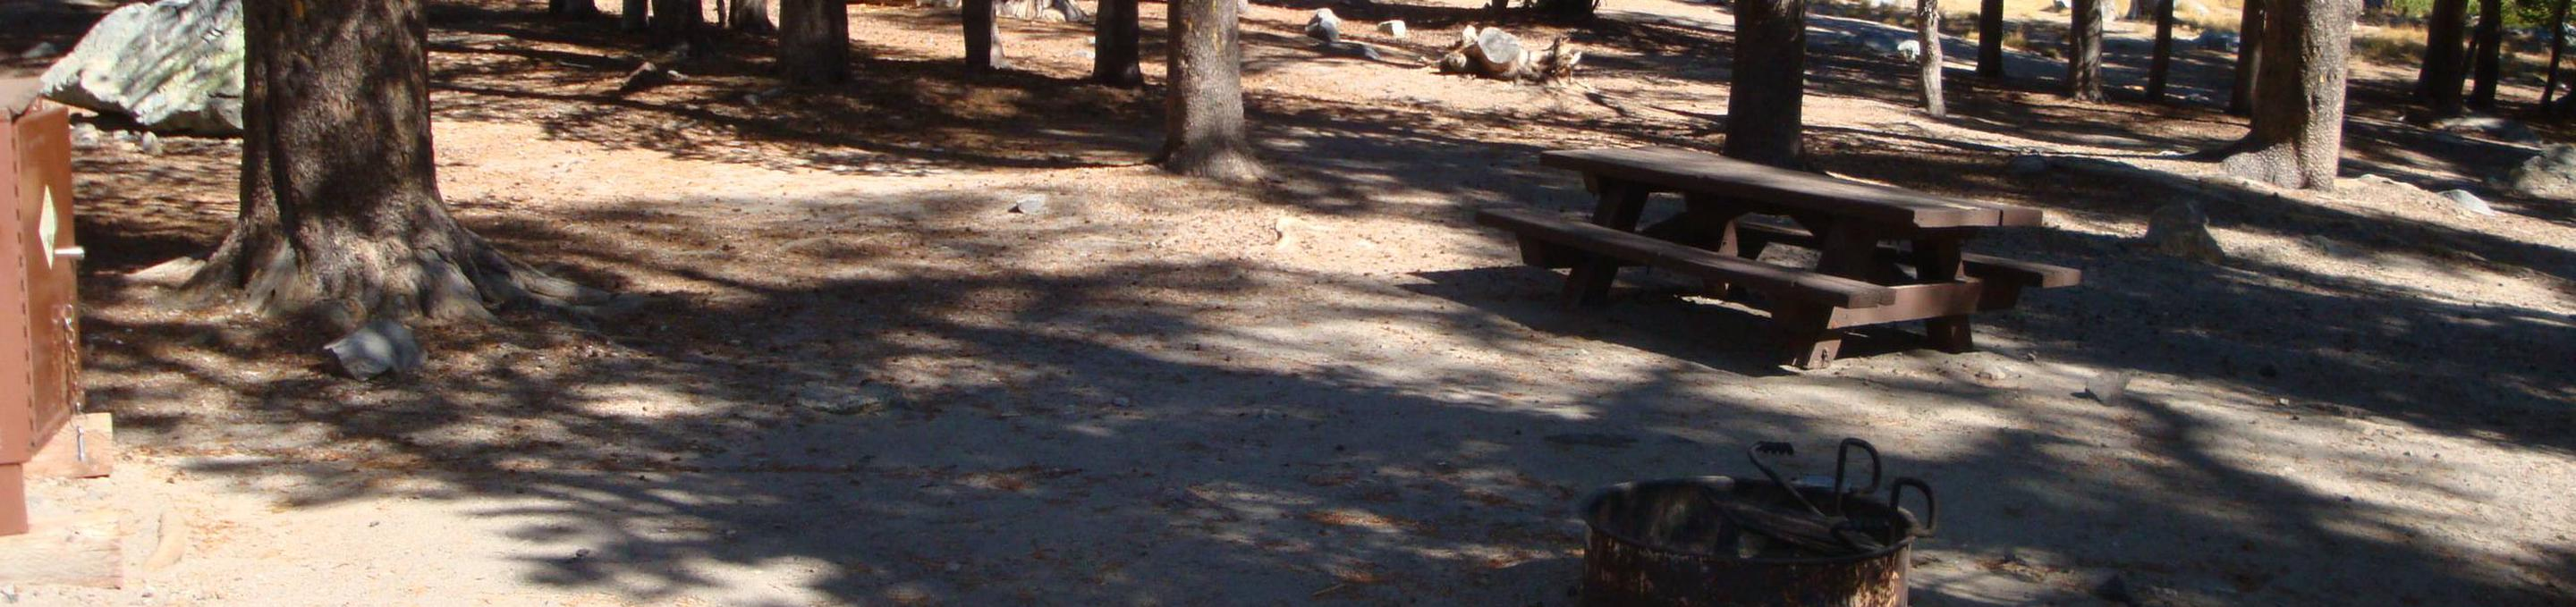 Lake Mary Campground SITE 22